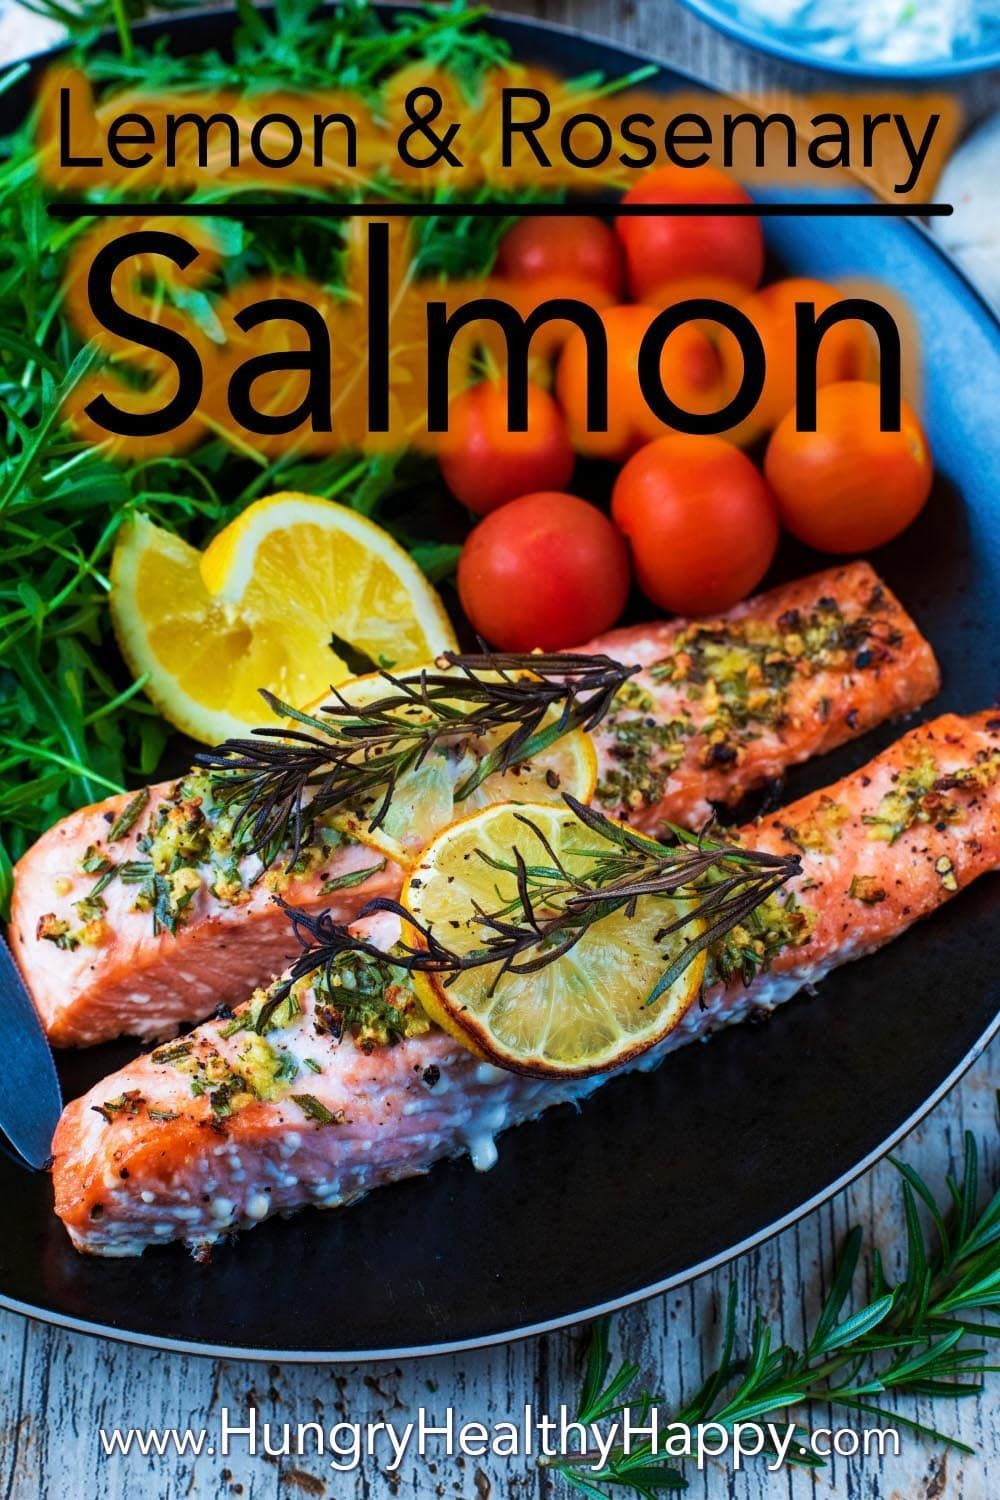 Lemon and Rosemary Salmon images